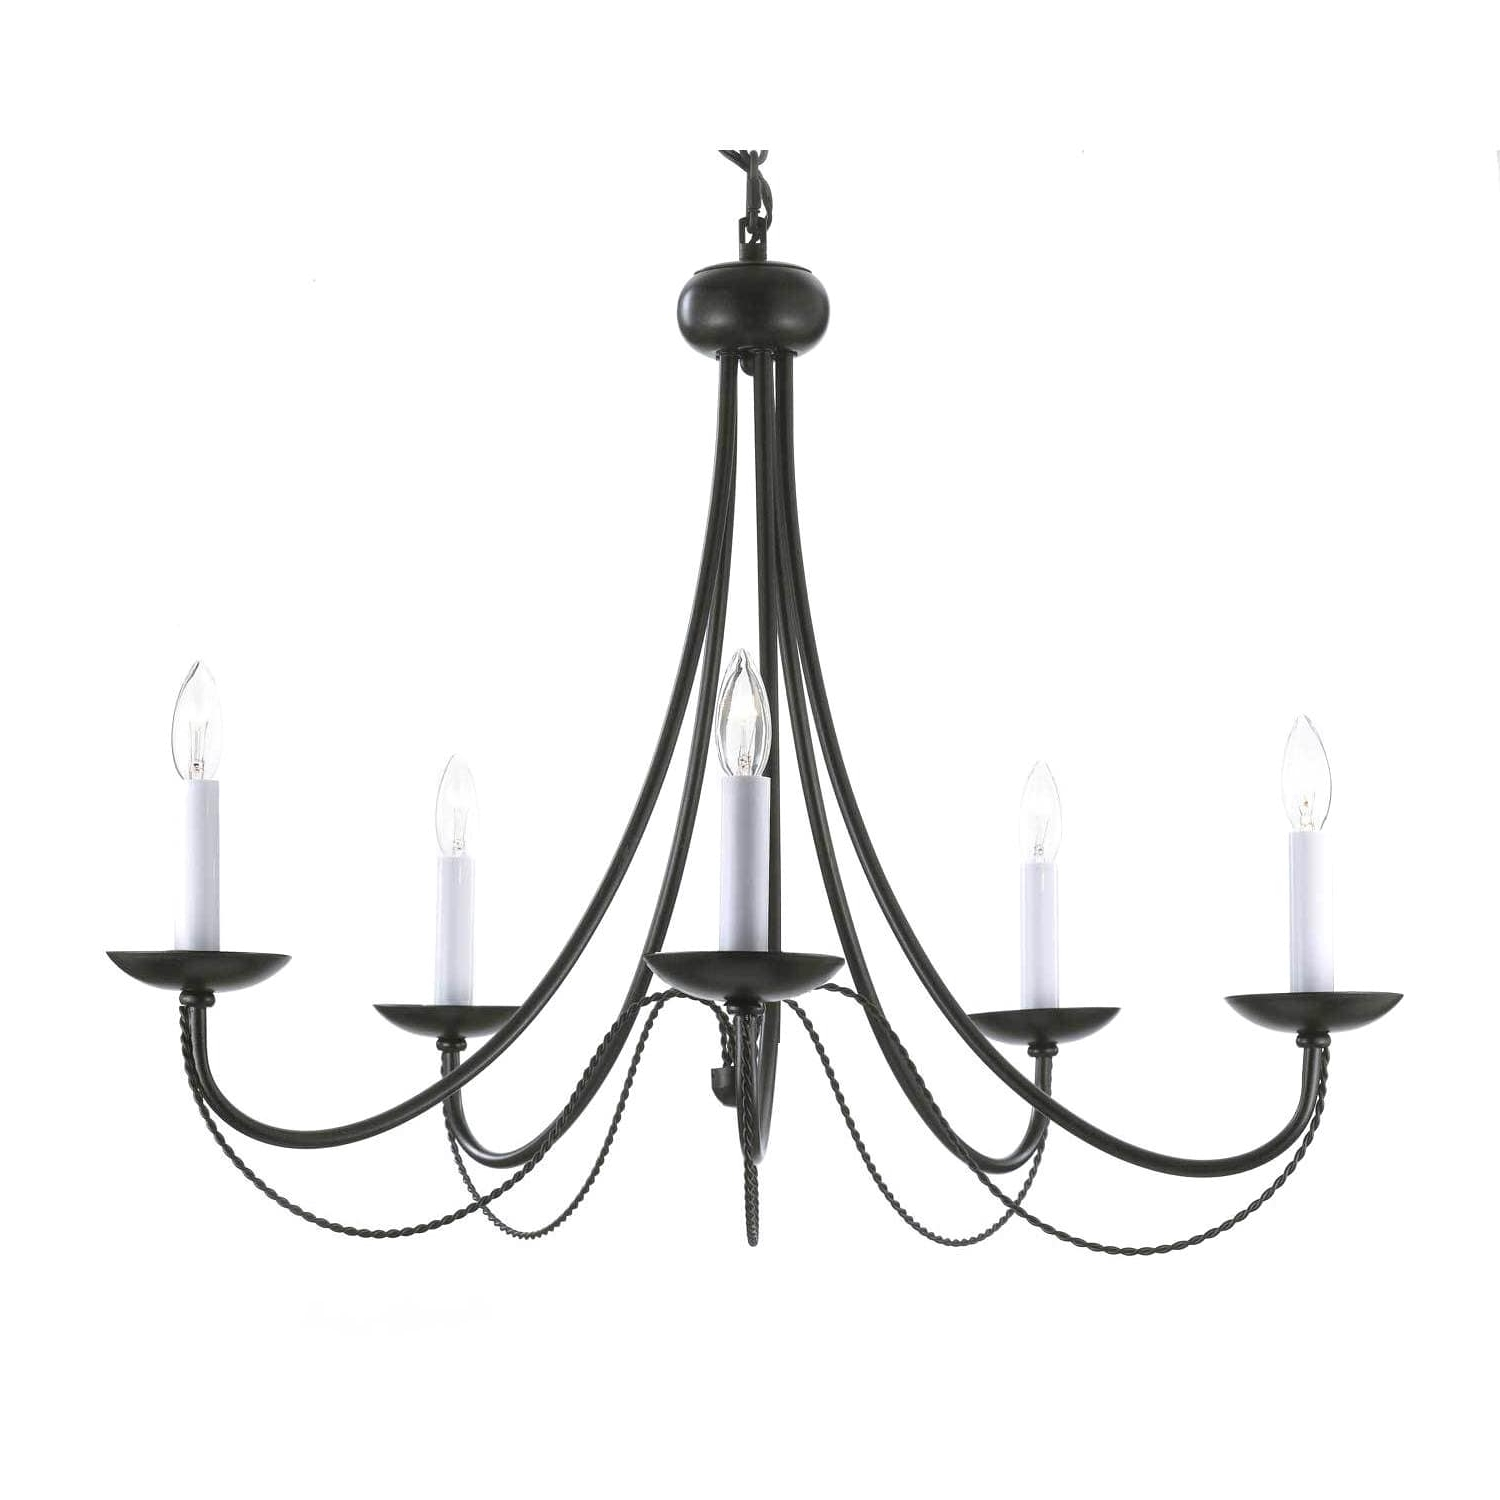 Gallery Versailles 5 Light Black Wrought Iron Chandelier – Free Inside Well Known Wrought Iron Chandeliers (View 10 of 20)